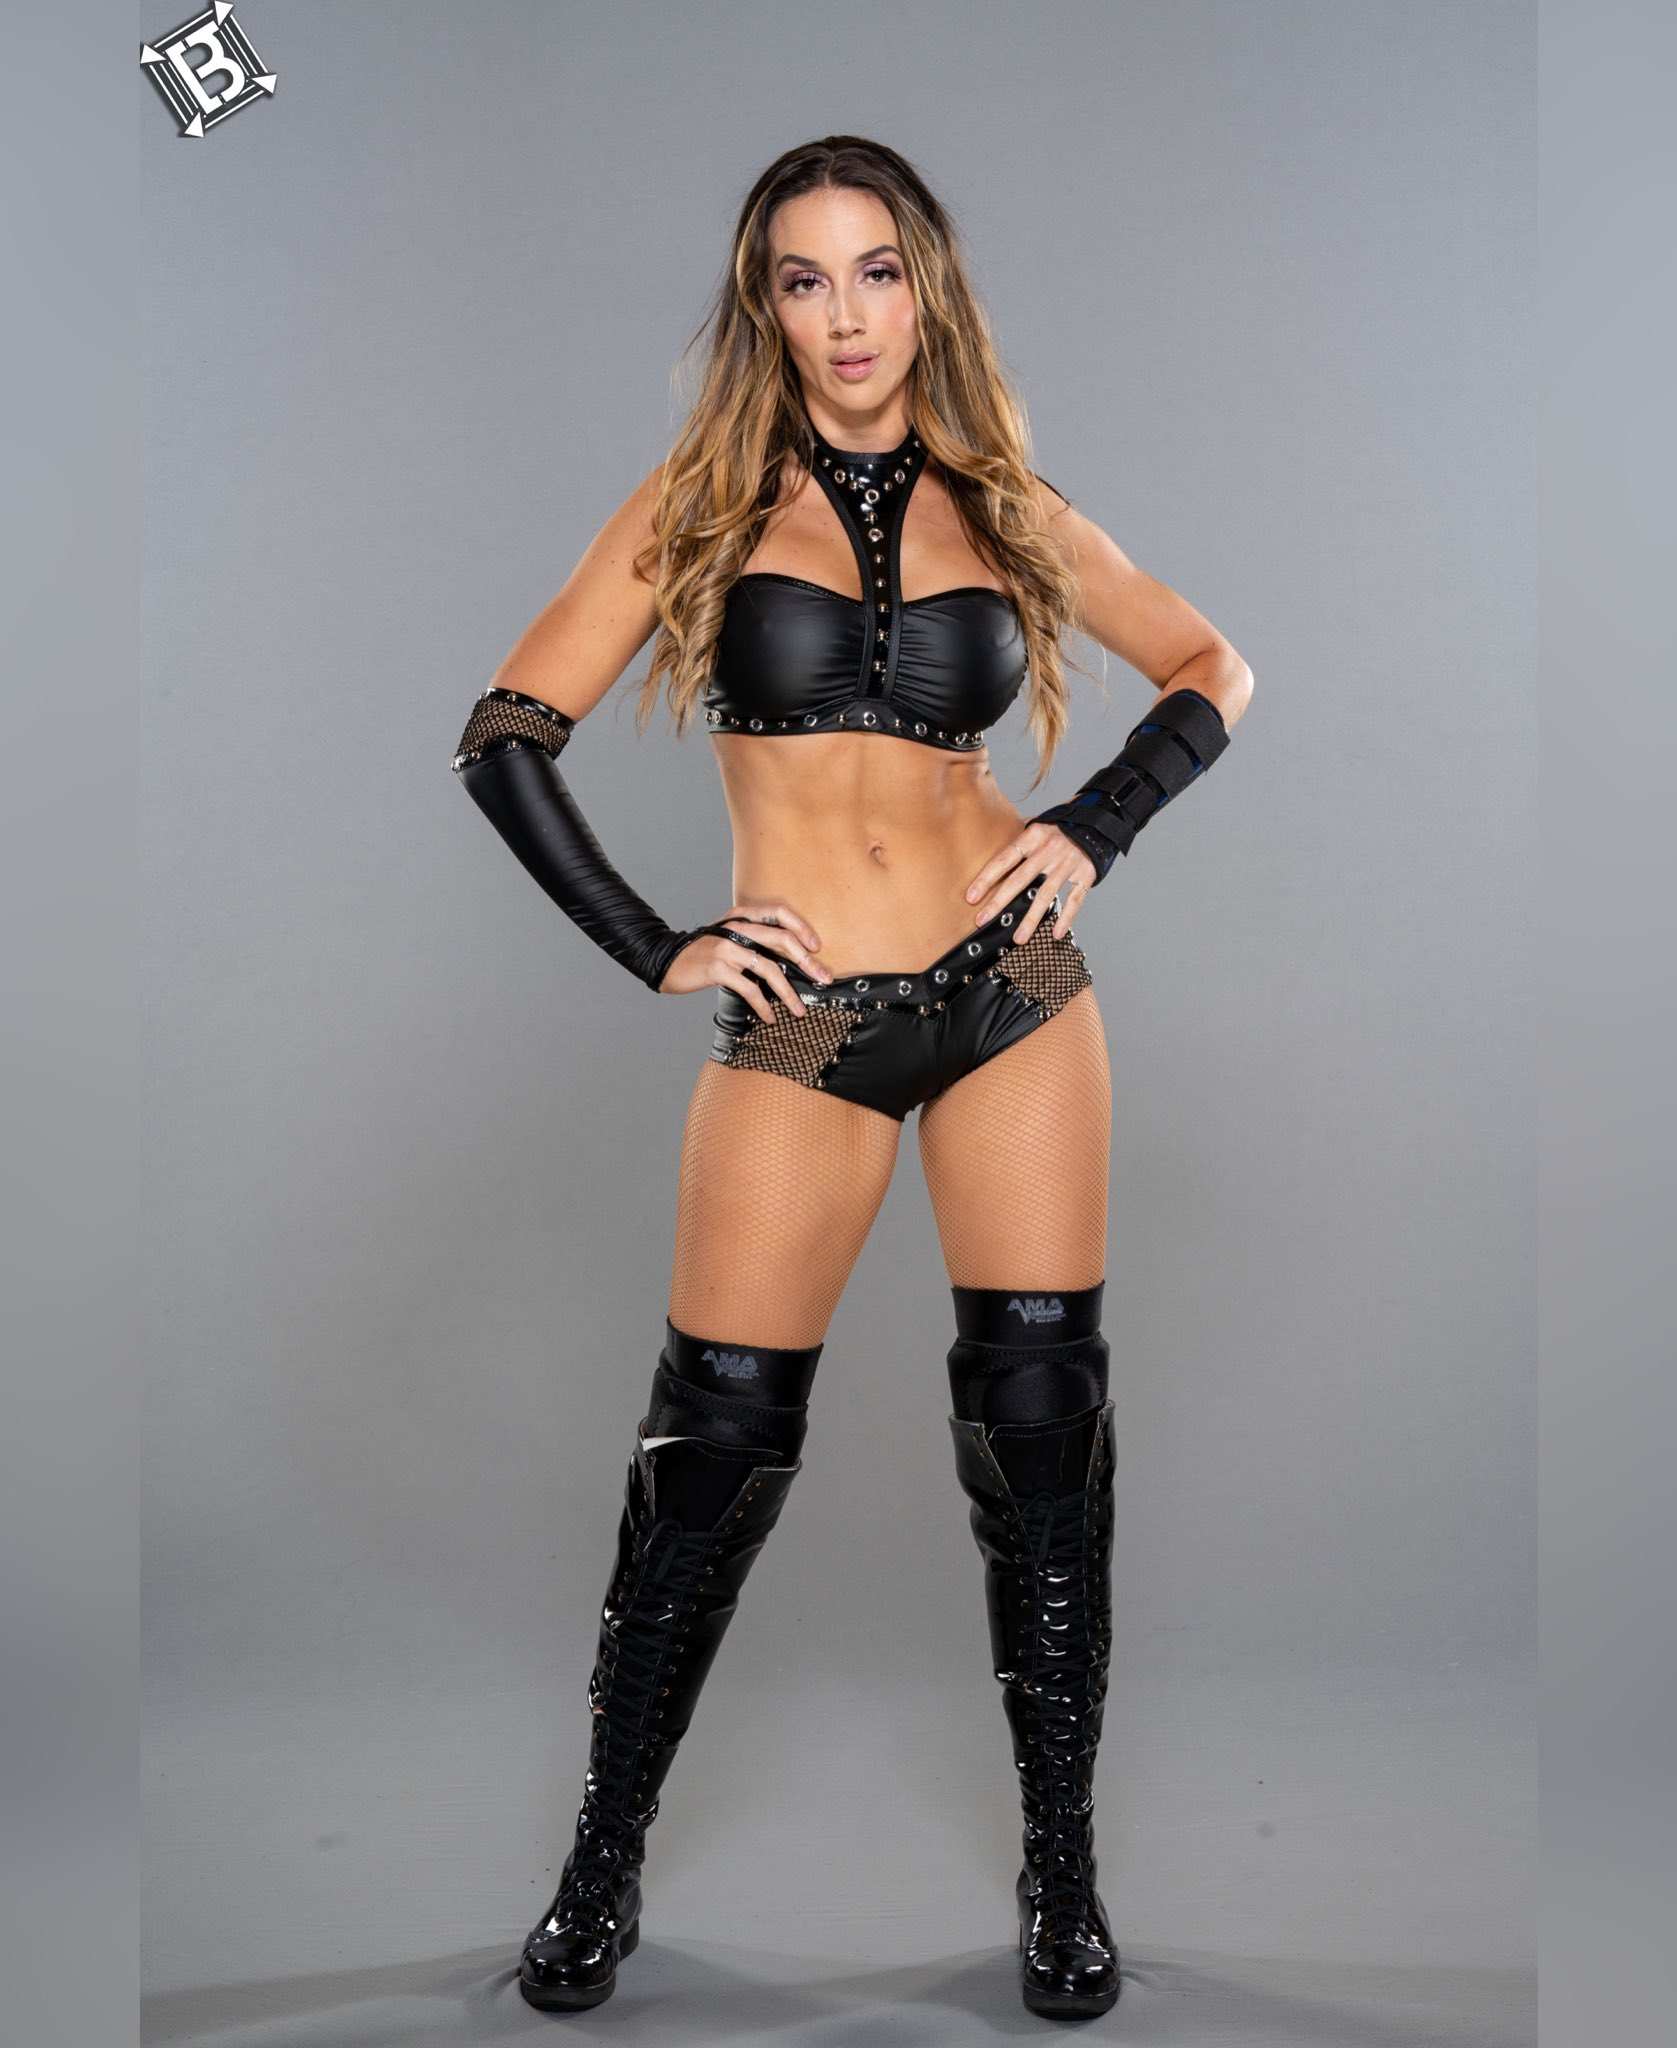 Chelsea Green Pays Homage To WWE Legends The Bella Twins 103